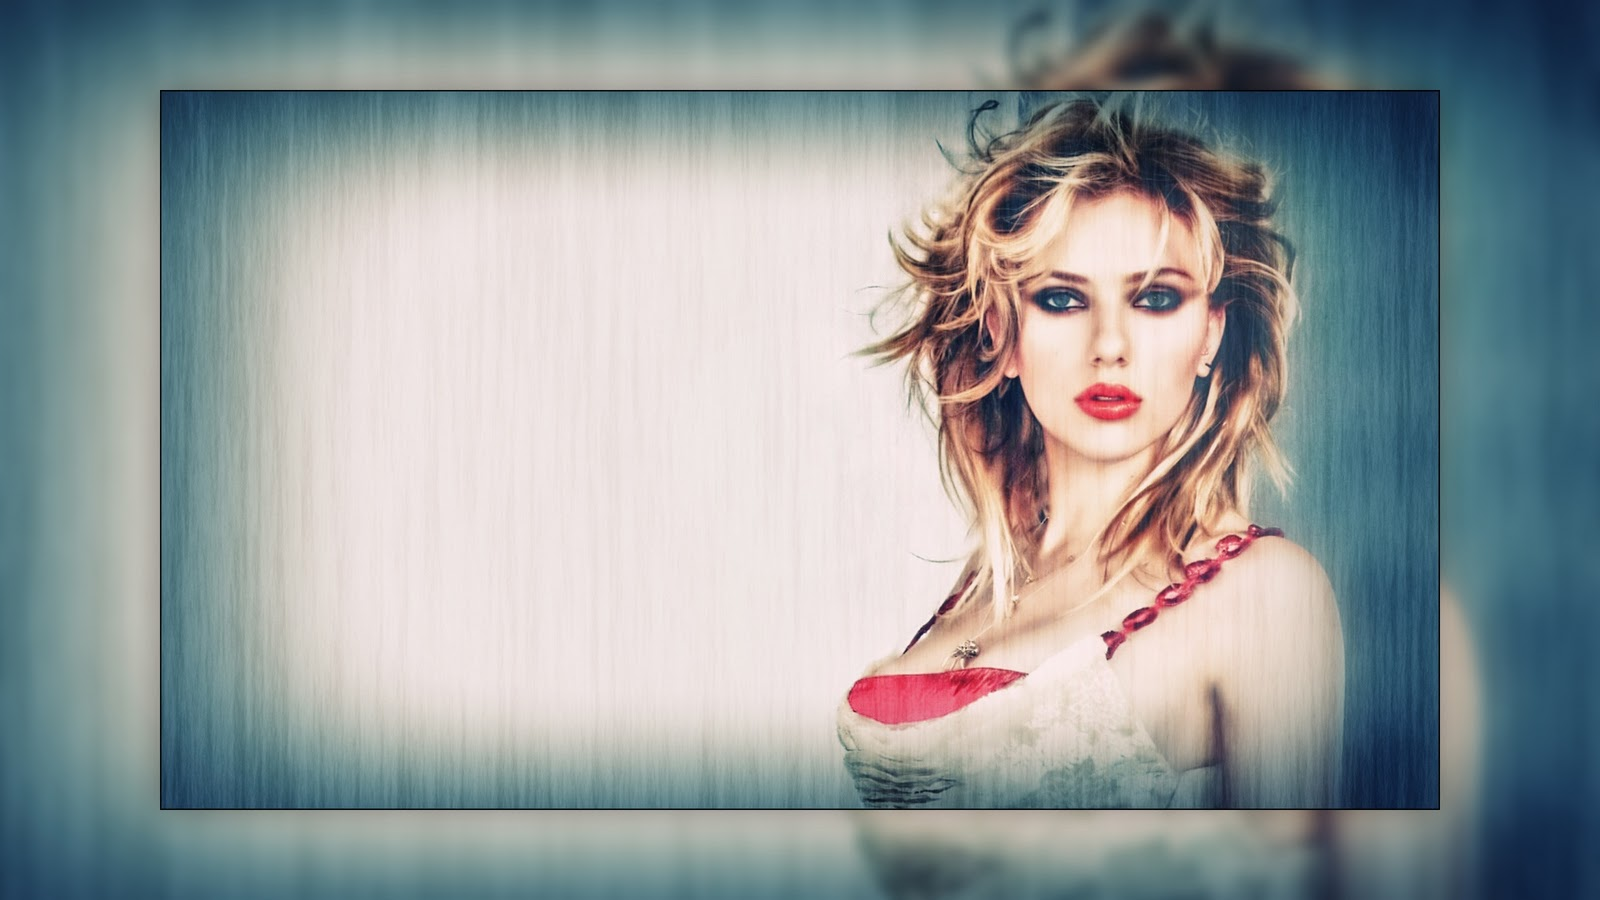 Scarlett Johansson Hot HD Wallpaper